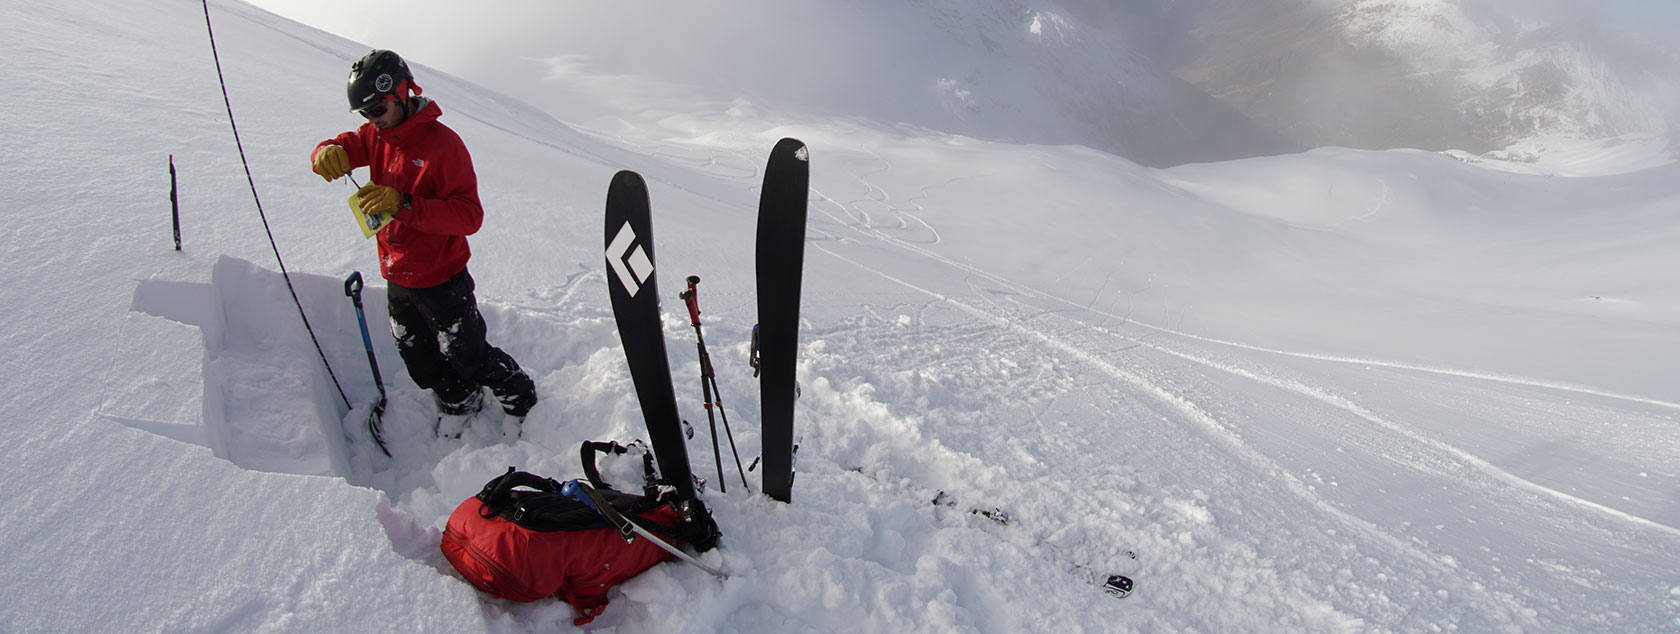 Check your avalanche safety equipment